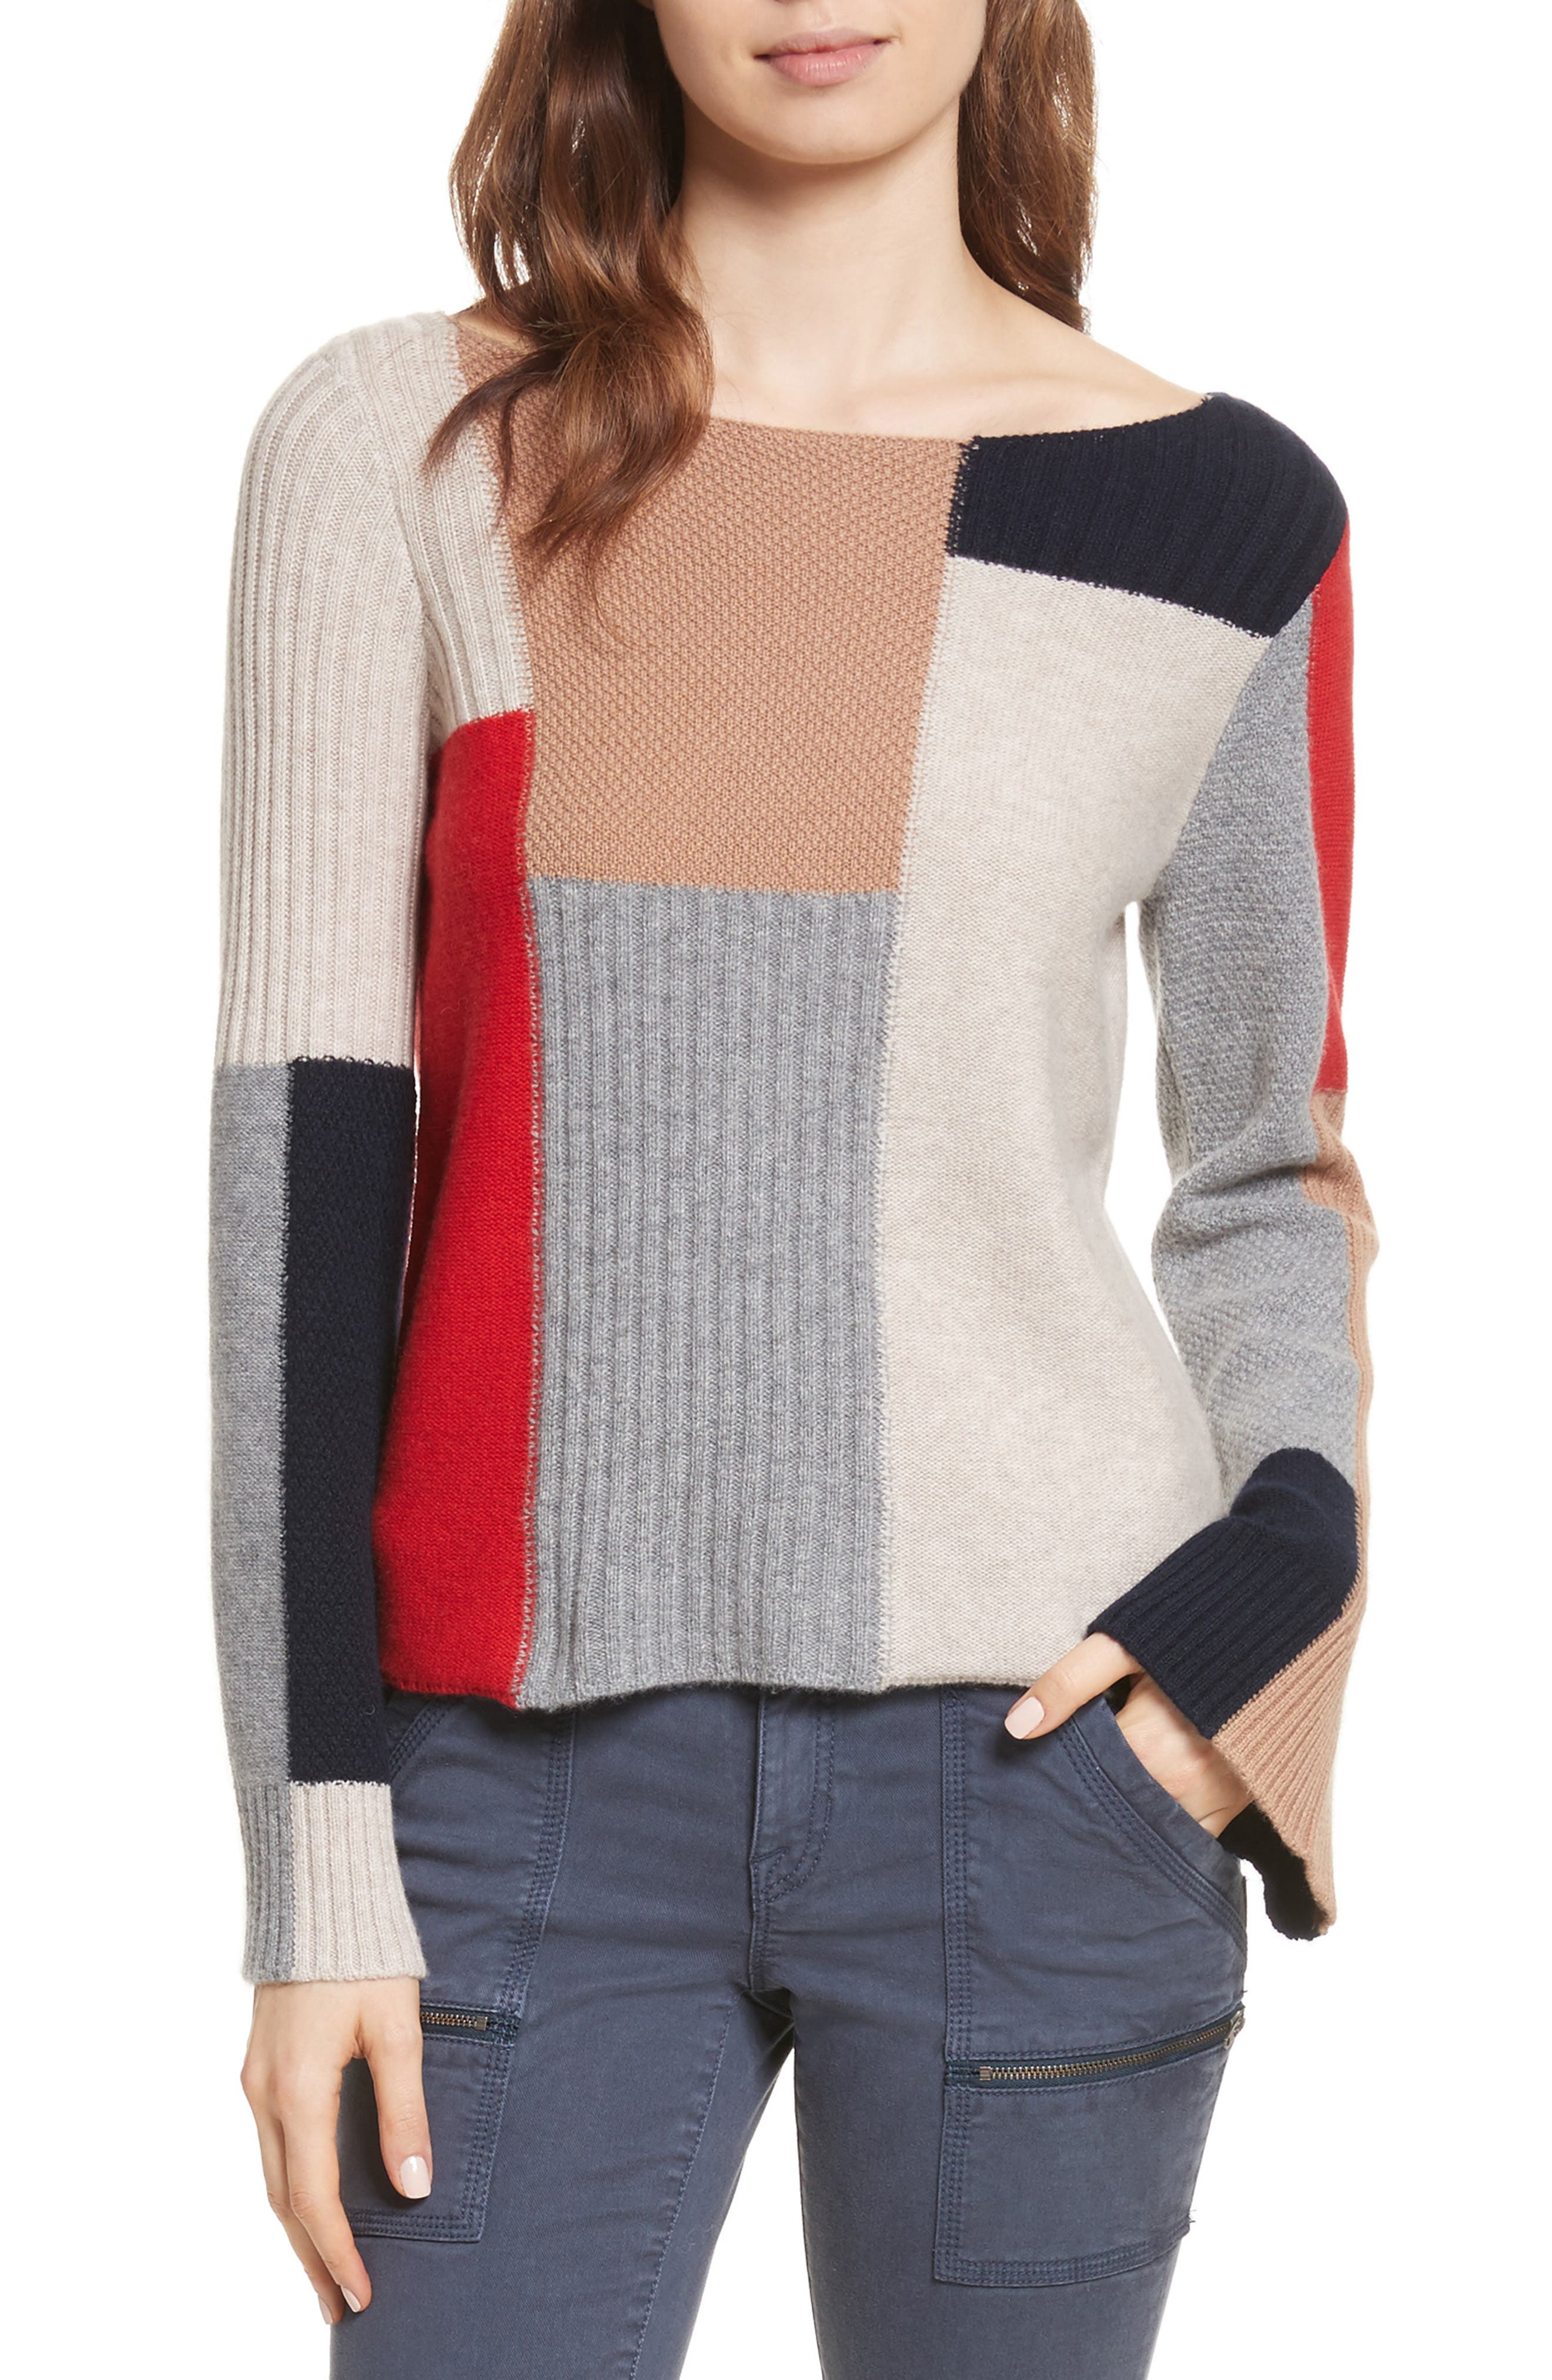 Adene Wool & Cashmere Sweater,                             Main thumbnail 1, color,                             641